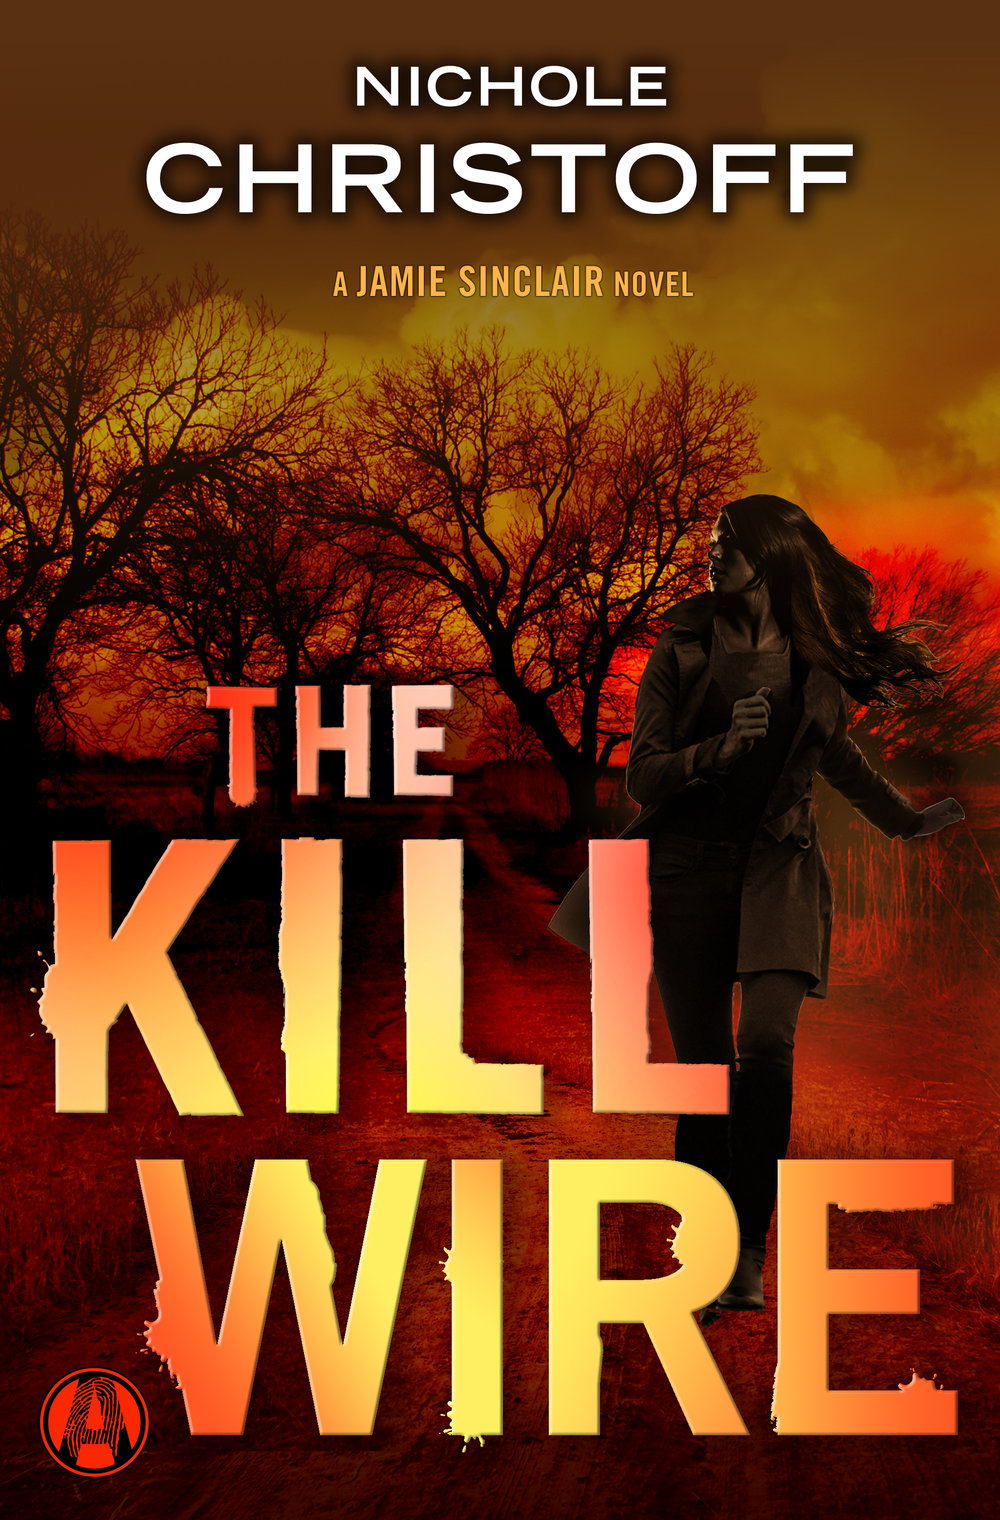 The Kill Wire  - A single text message sends private-eye-turned-security-specialist Jamie Sinclair on a cross-country chase in search for the missing mother of a DEA agent's child, brings her to a crossroads with the military cop who loves her, and puts her on a collision course with killers who'll stop at nothing to get what they want in Book 5 of this exciting series.